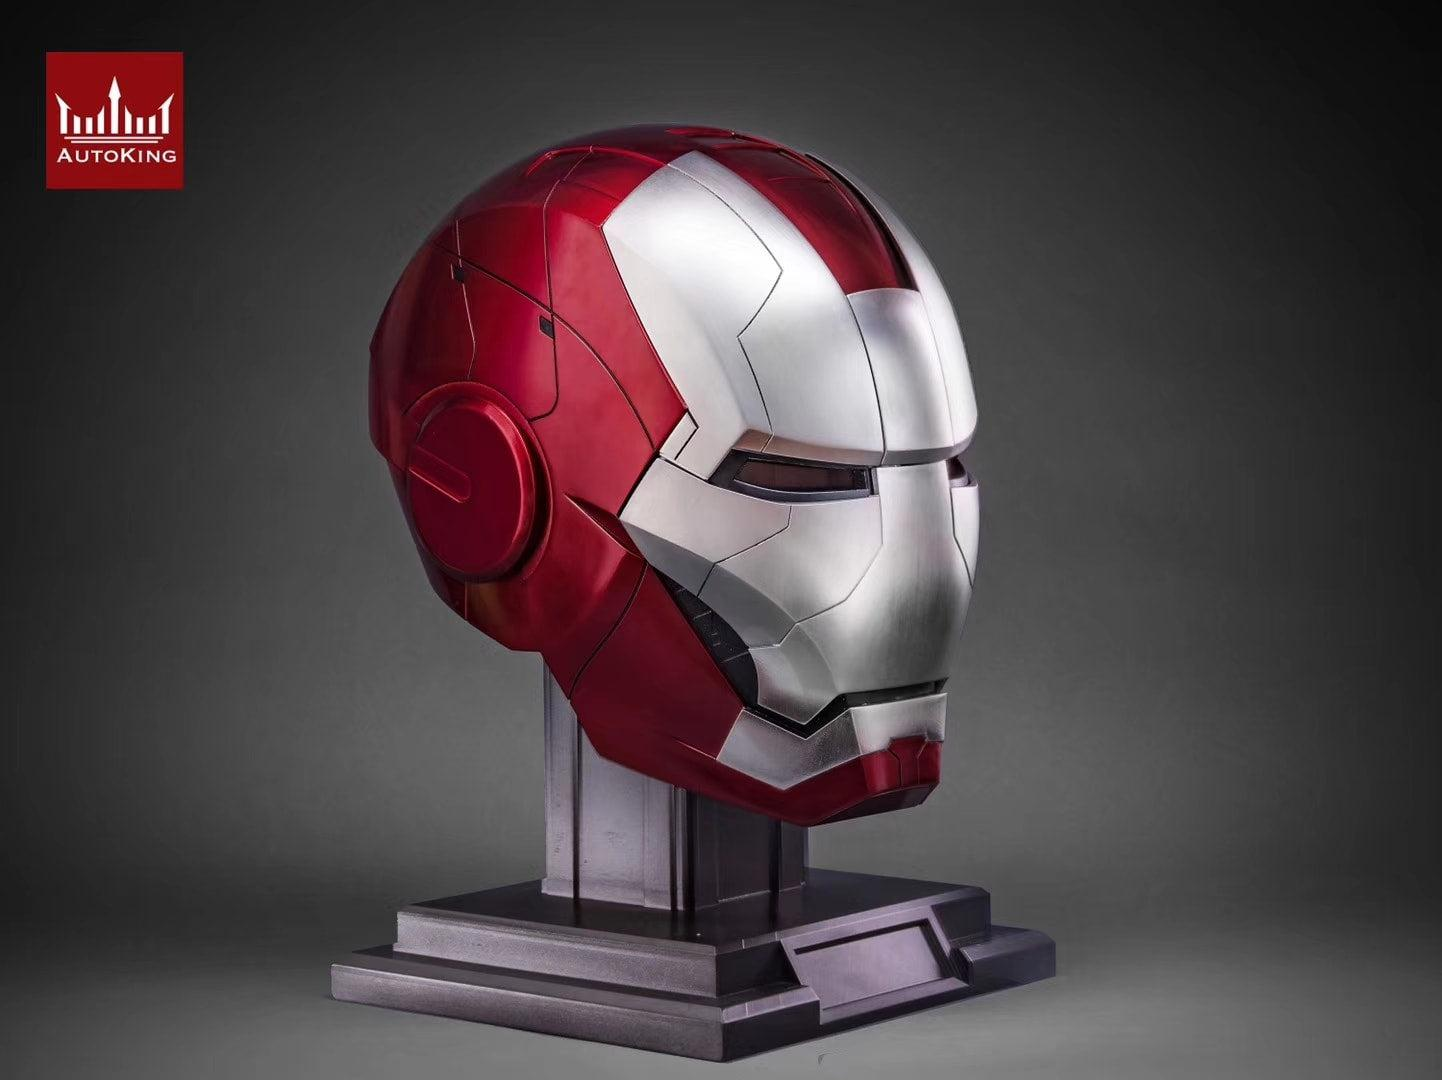 Iron Man: MK5: Wearable Helmet: Electronic Open/Close: AutoKing